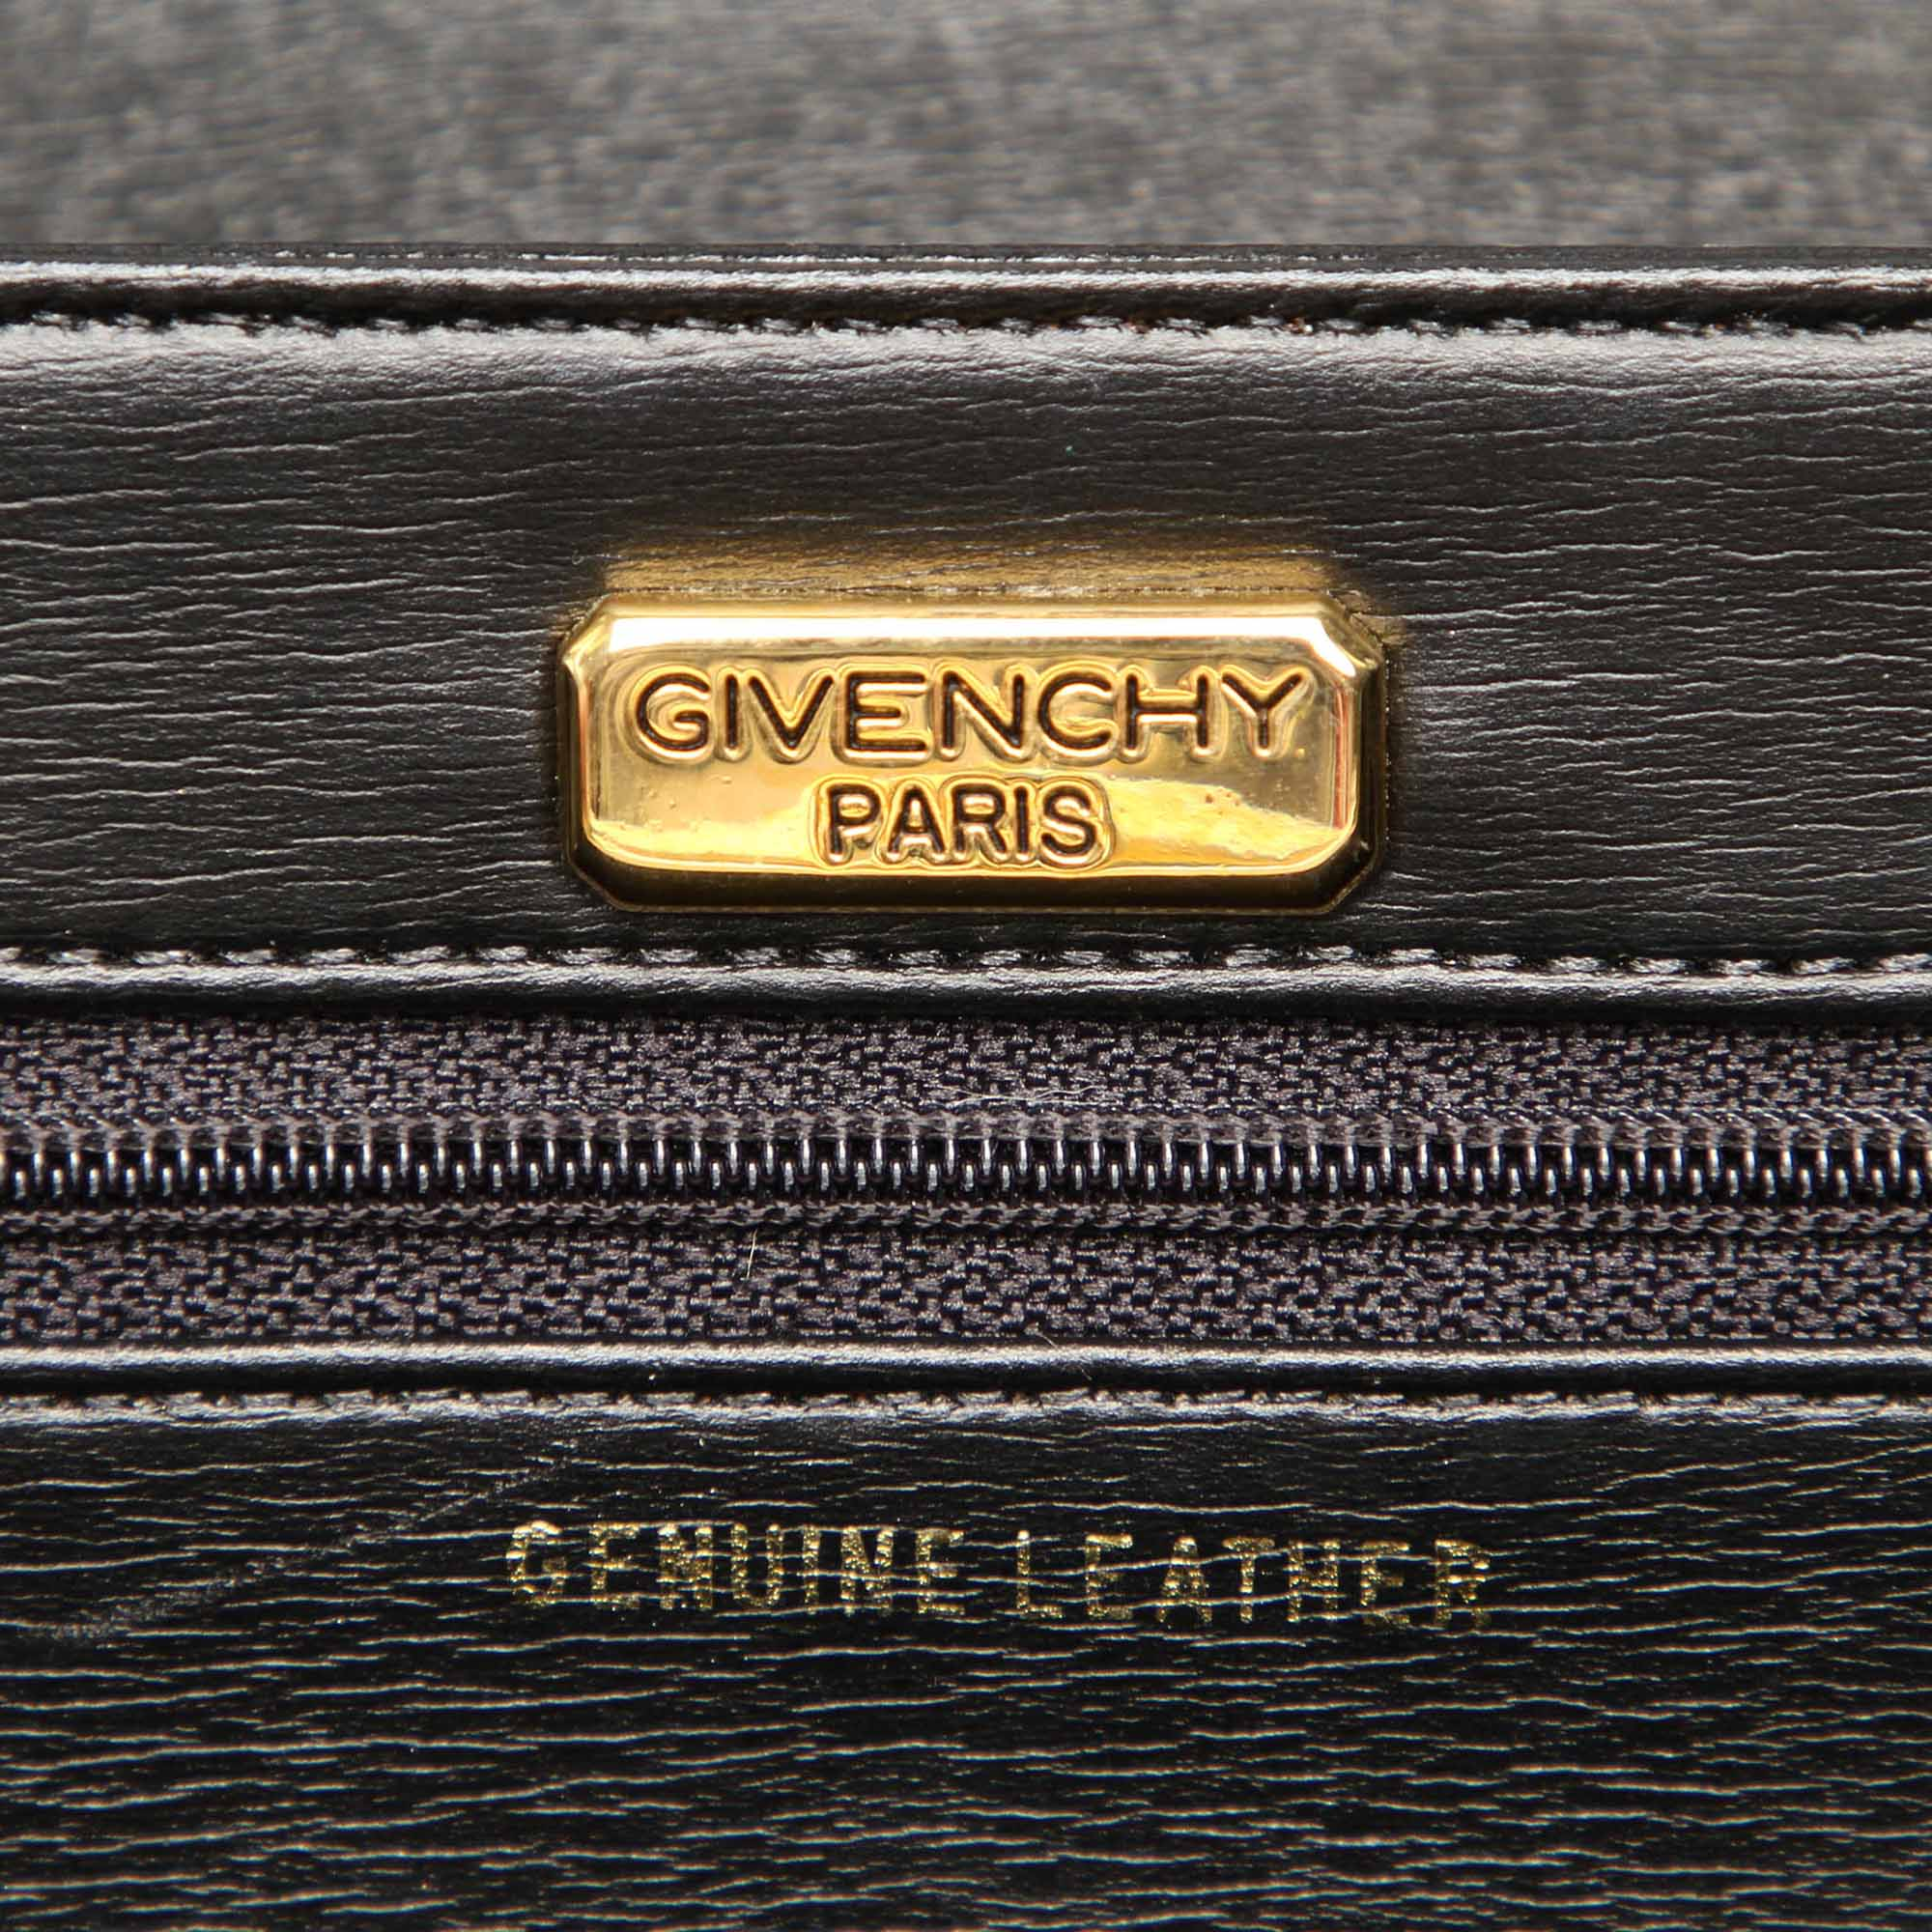 Givenchy Green Chain Leather Crossbody Bag